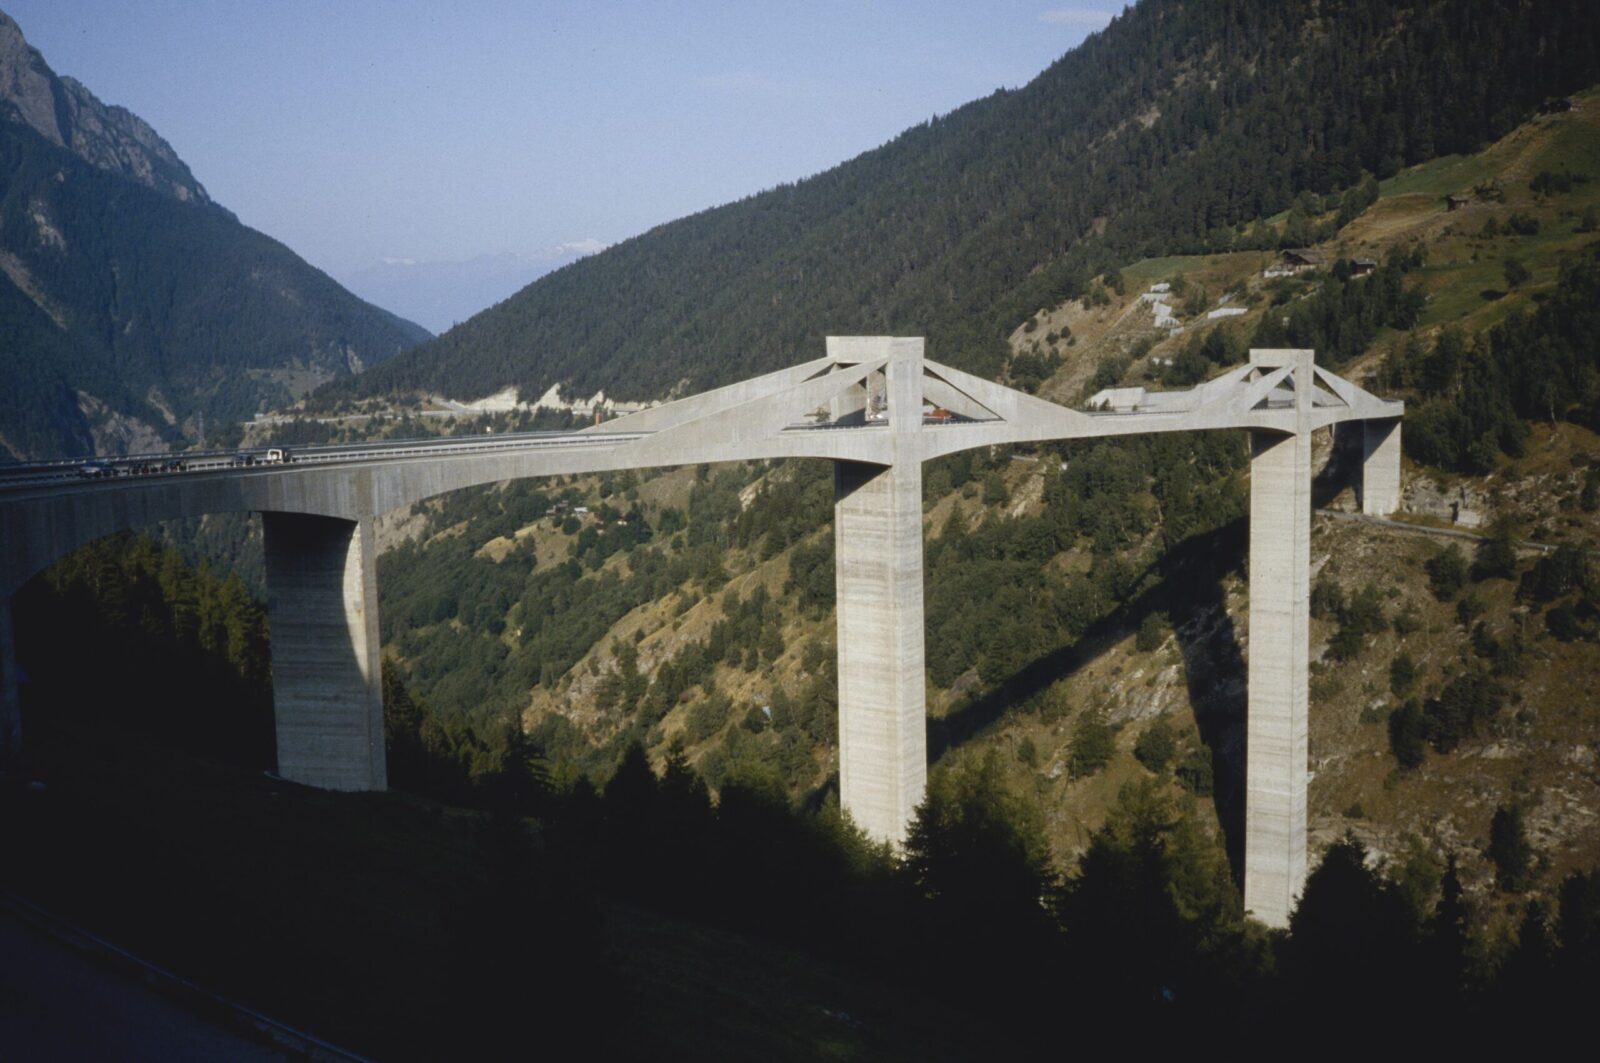 Part of the Simplon motorway, the Ganter Bridge in the canton of Valais, which opened in 1980, was designed by multiple award-winning ETH Professor Christian Menn (1927–2018).